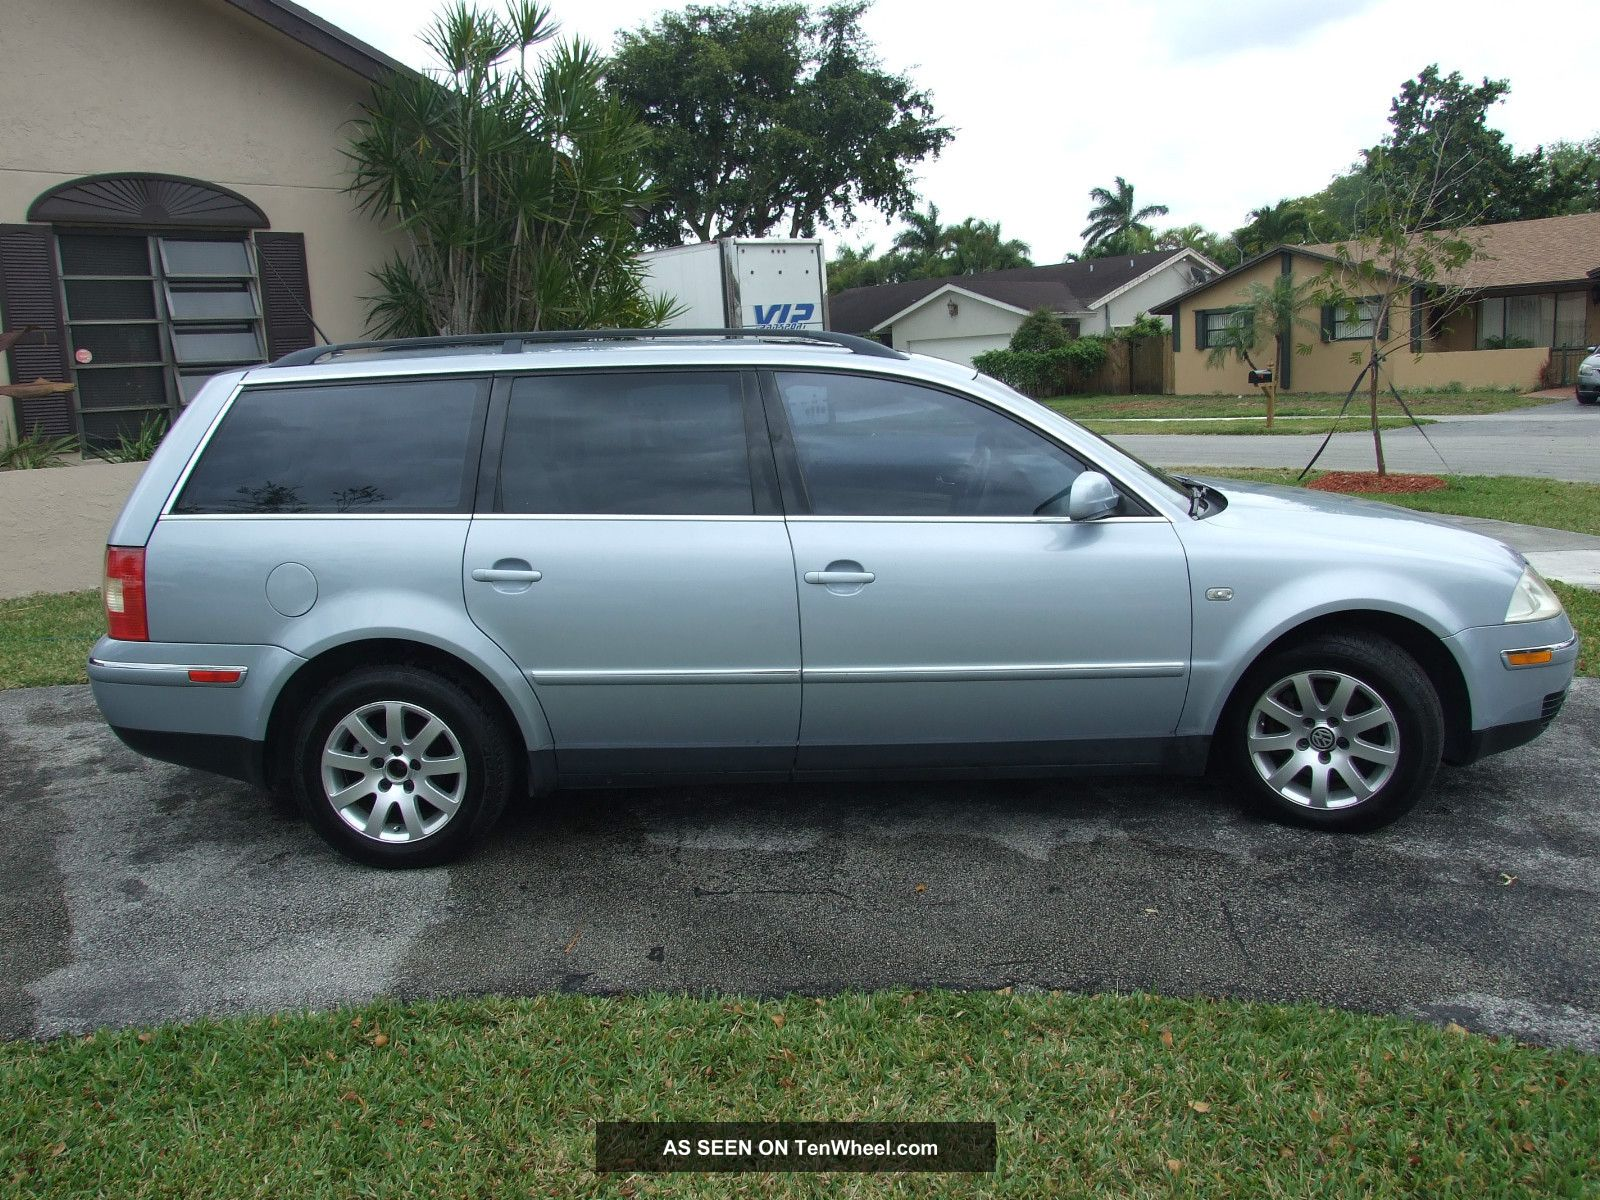 2001 volkswagen passat gls wagon cheap reliable gas saver. Black Bedroom Furniture Sets. Home Design Ideas